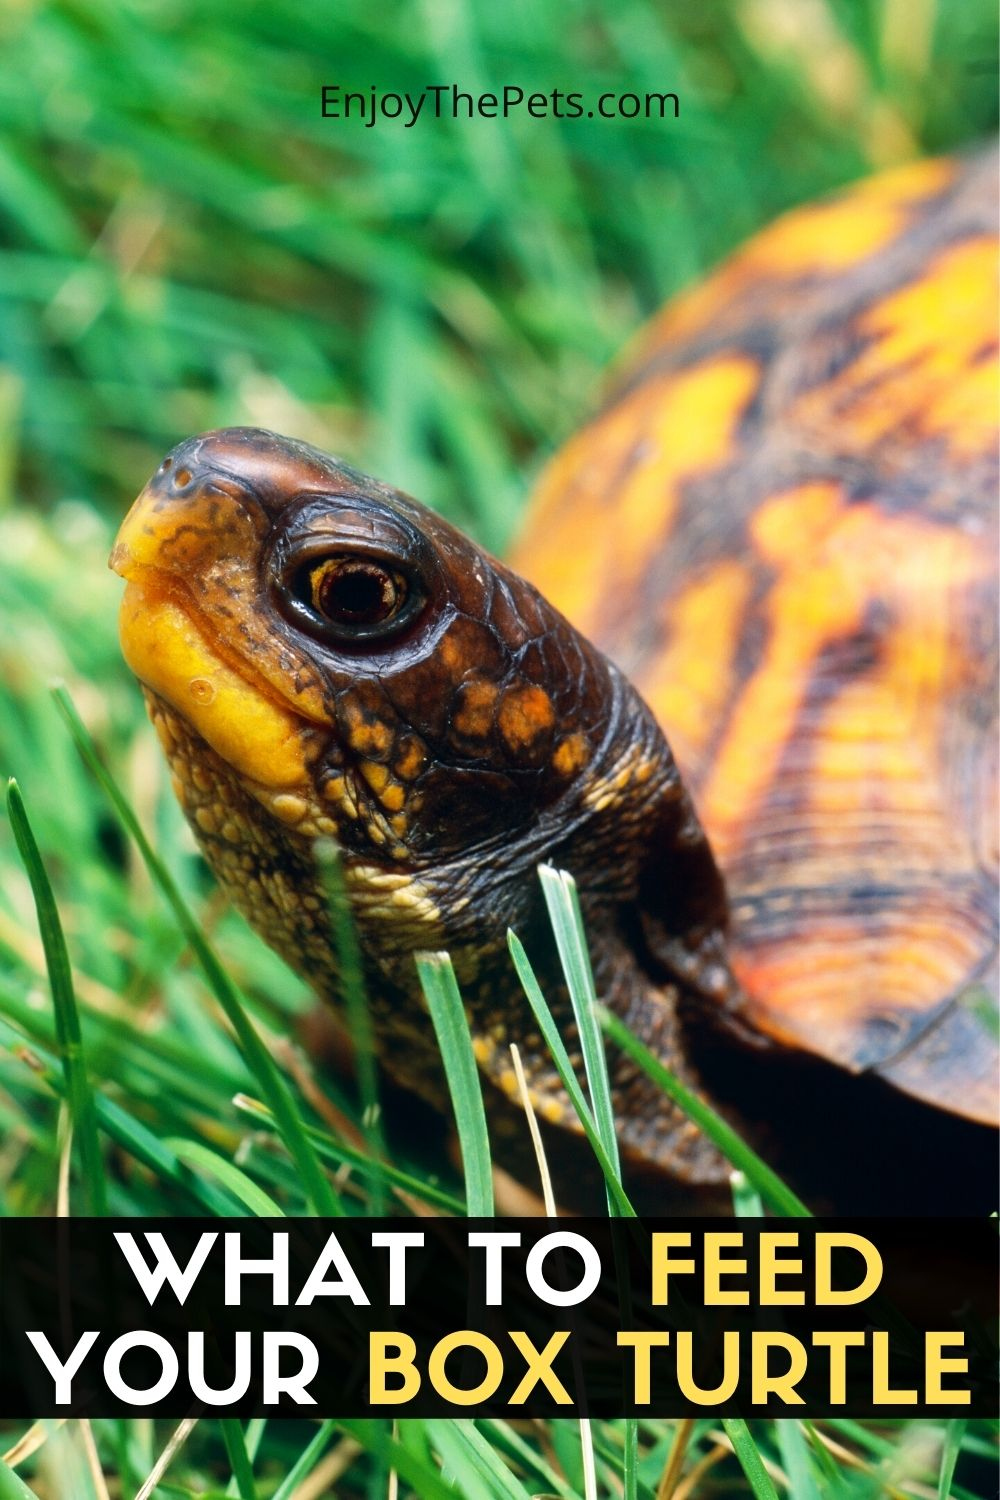 WHAT TO FEED YOUR BOX TURTLE